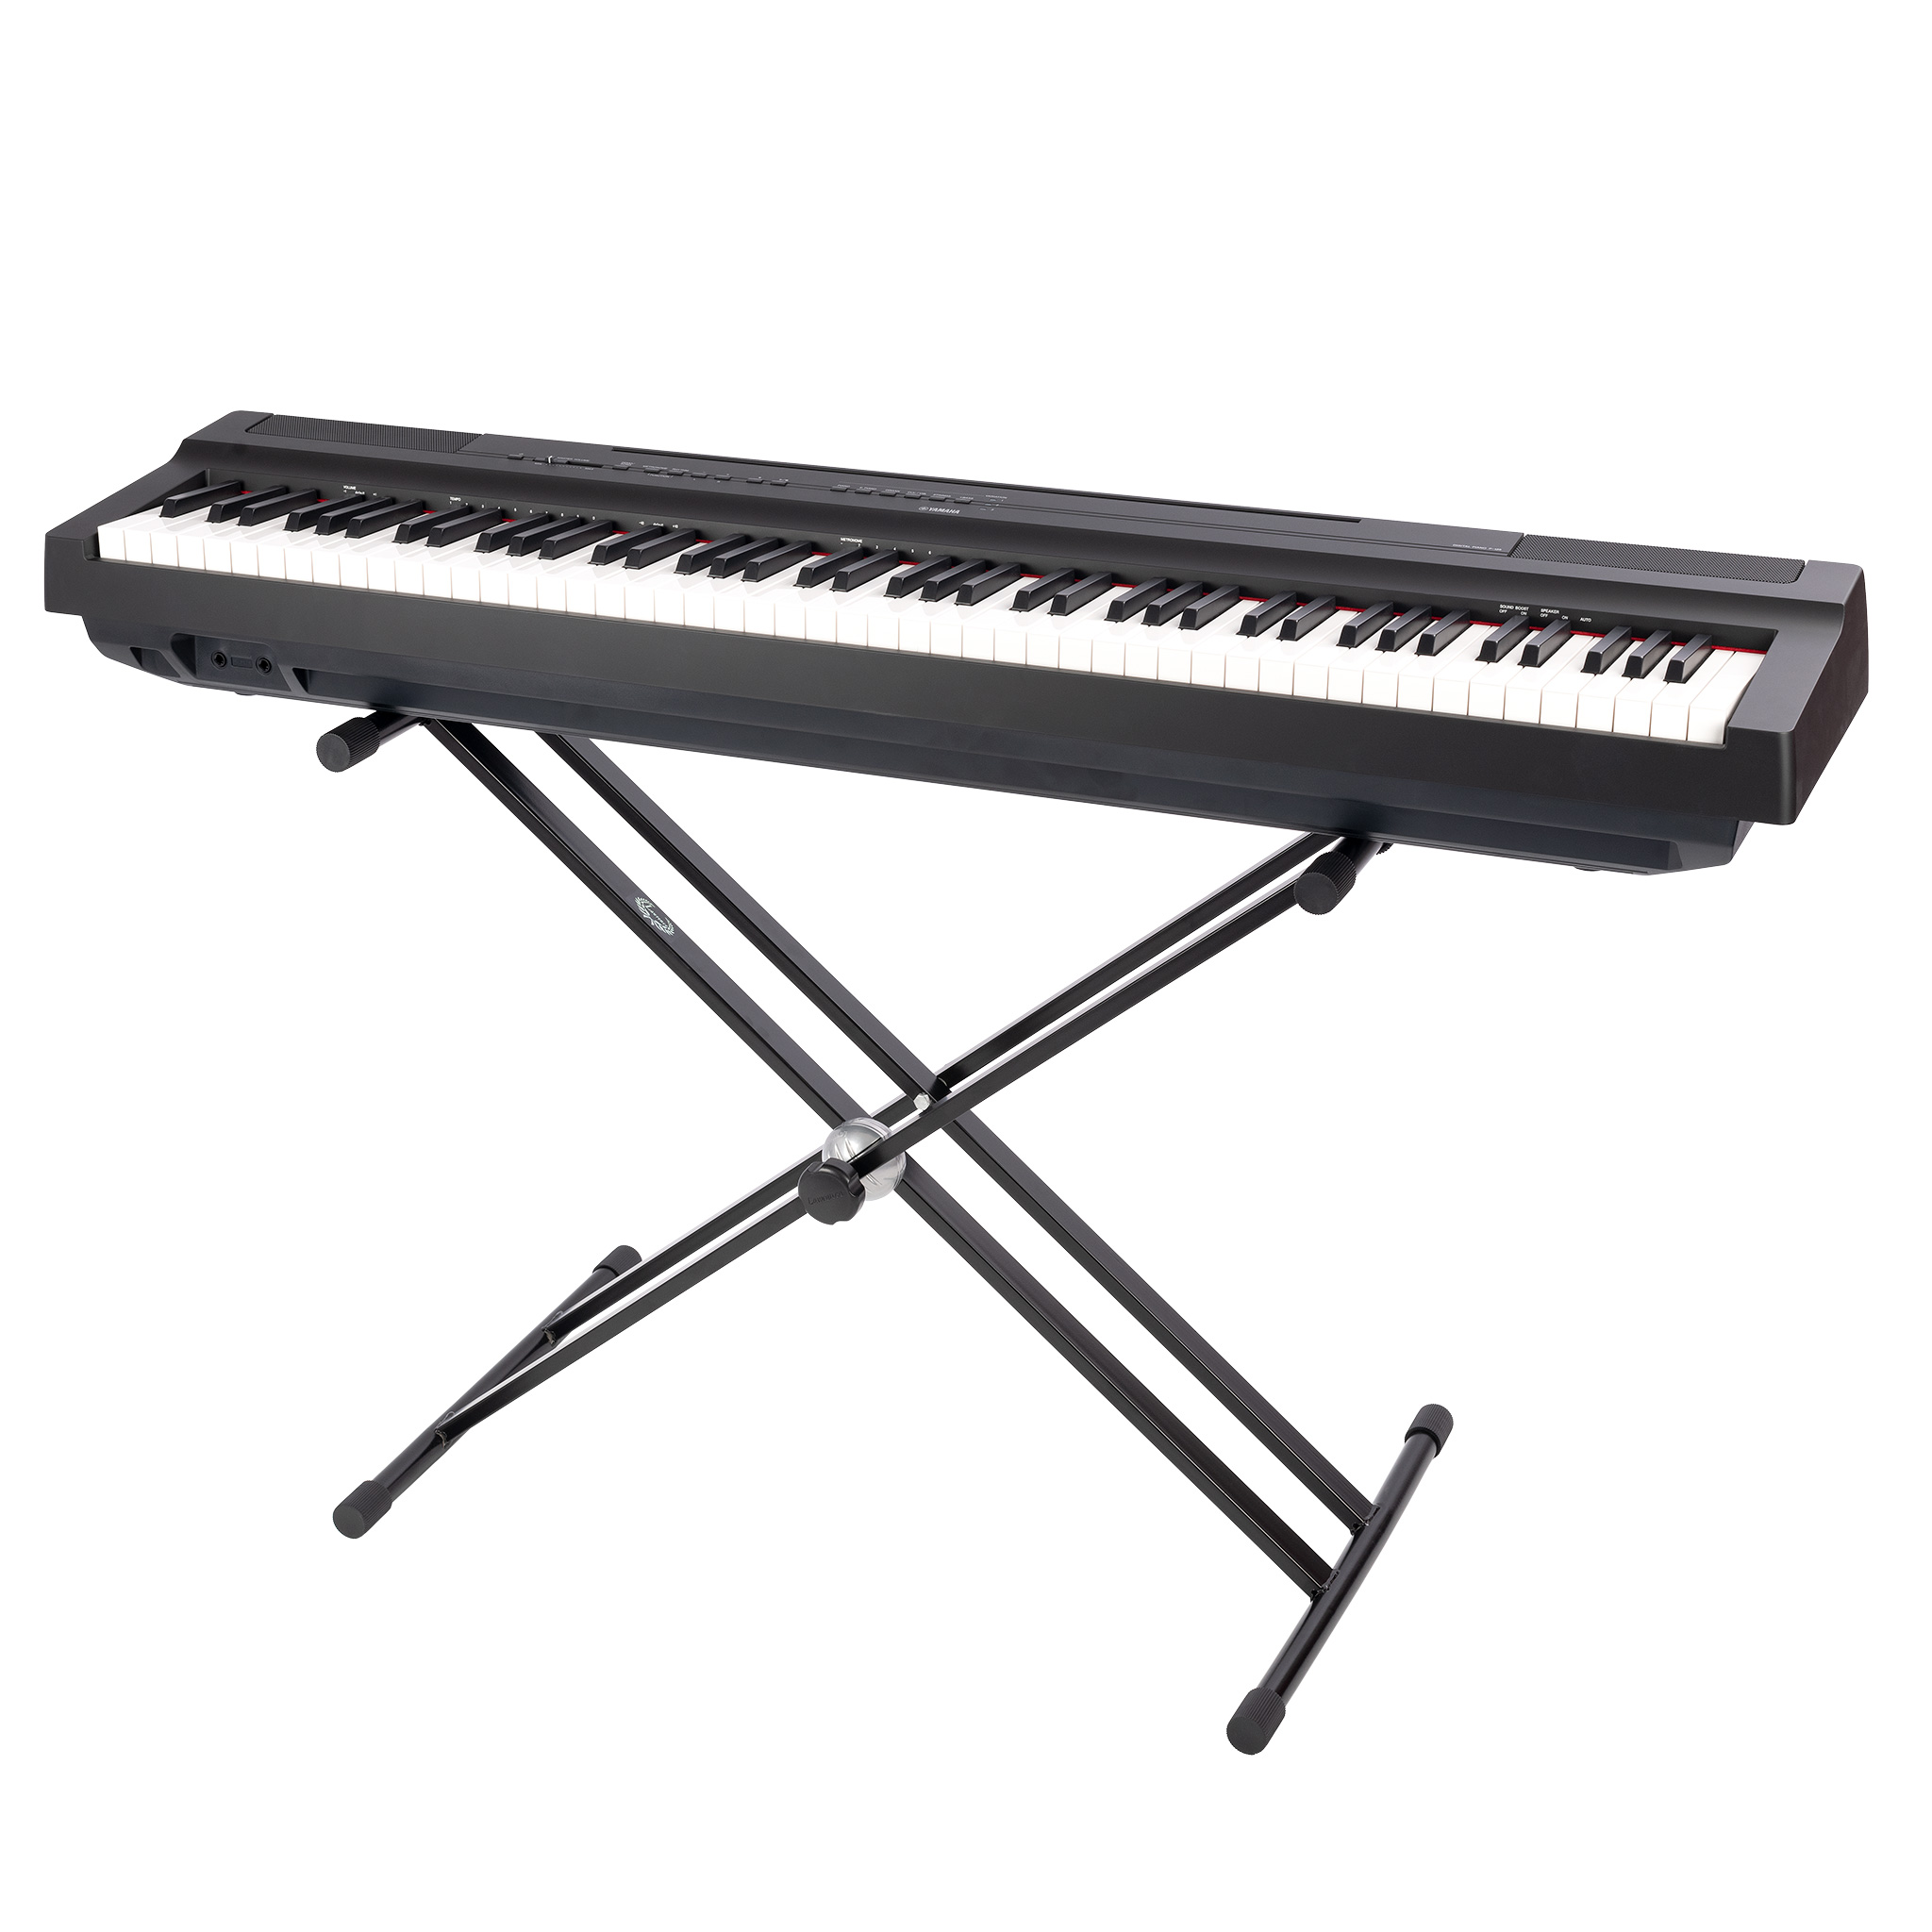 Opus double braced X-frame keyboard stand